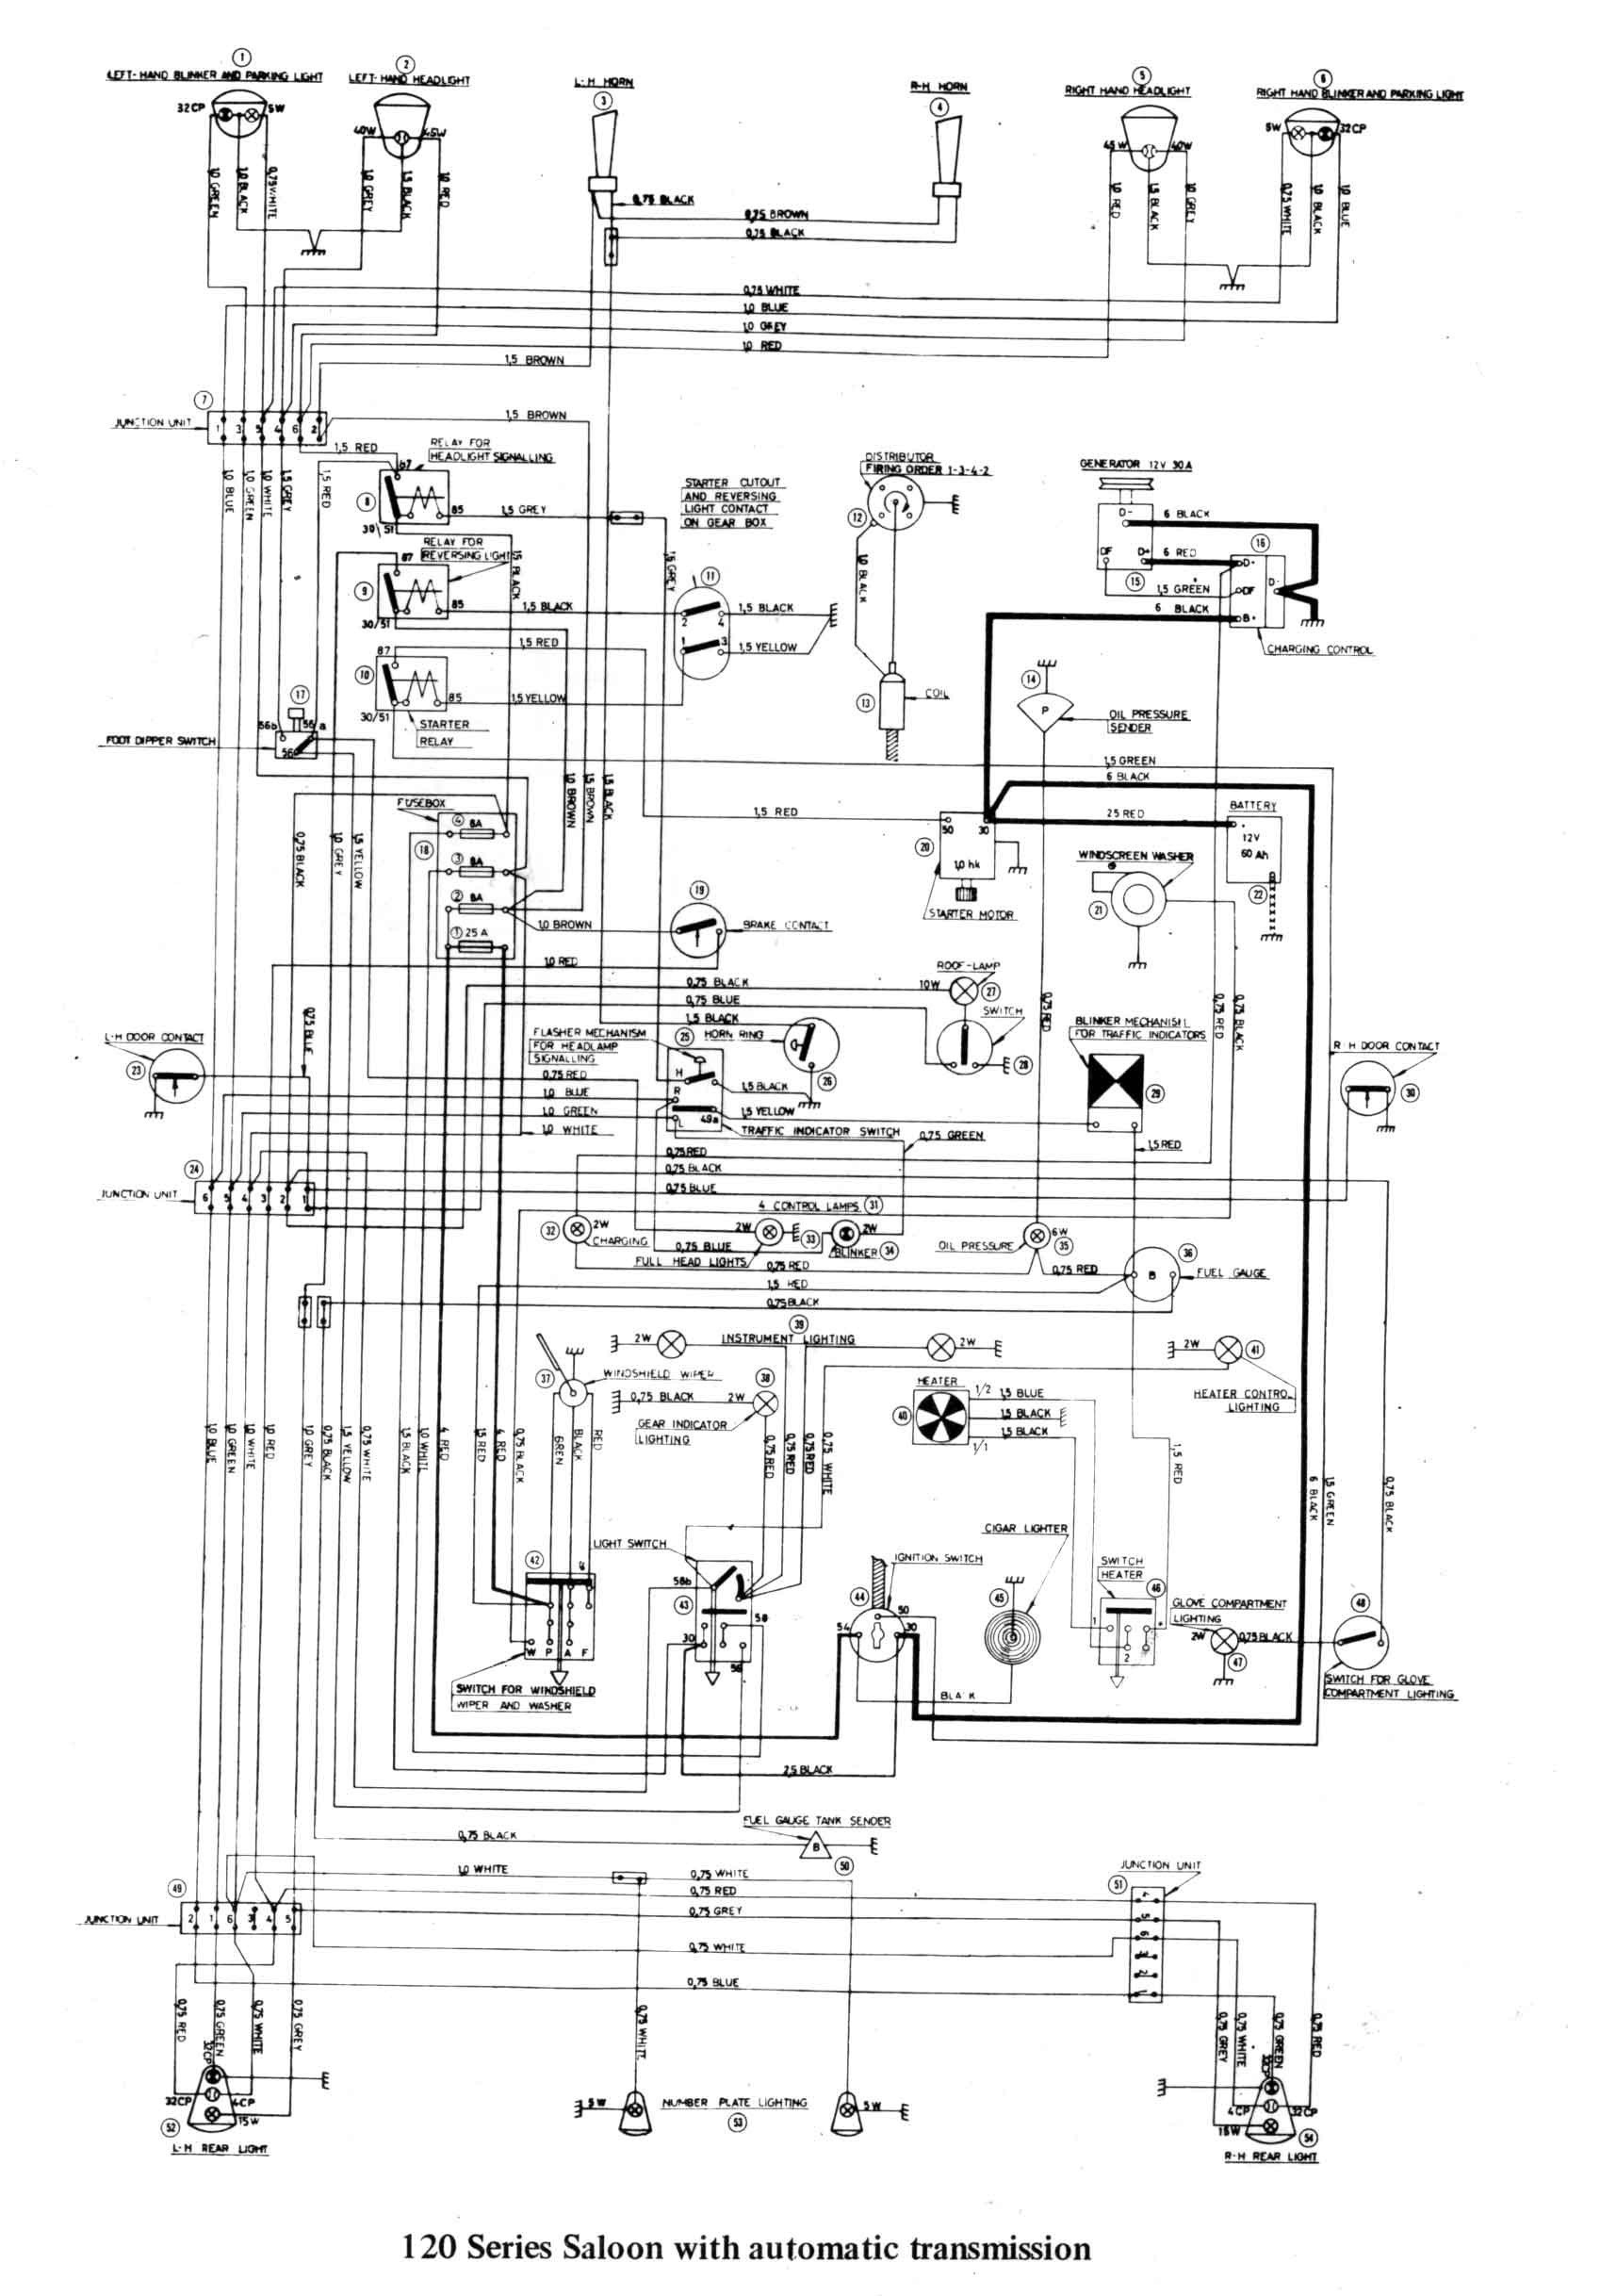 Car Audio Wiring Diagram Diagram Car Newest Porsche Cayenne Radio Wiring Diagram Diagrams Of Car Audio Wiring Diagram